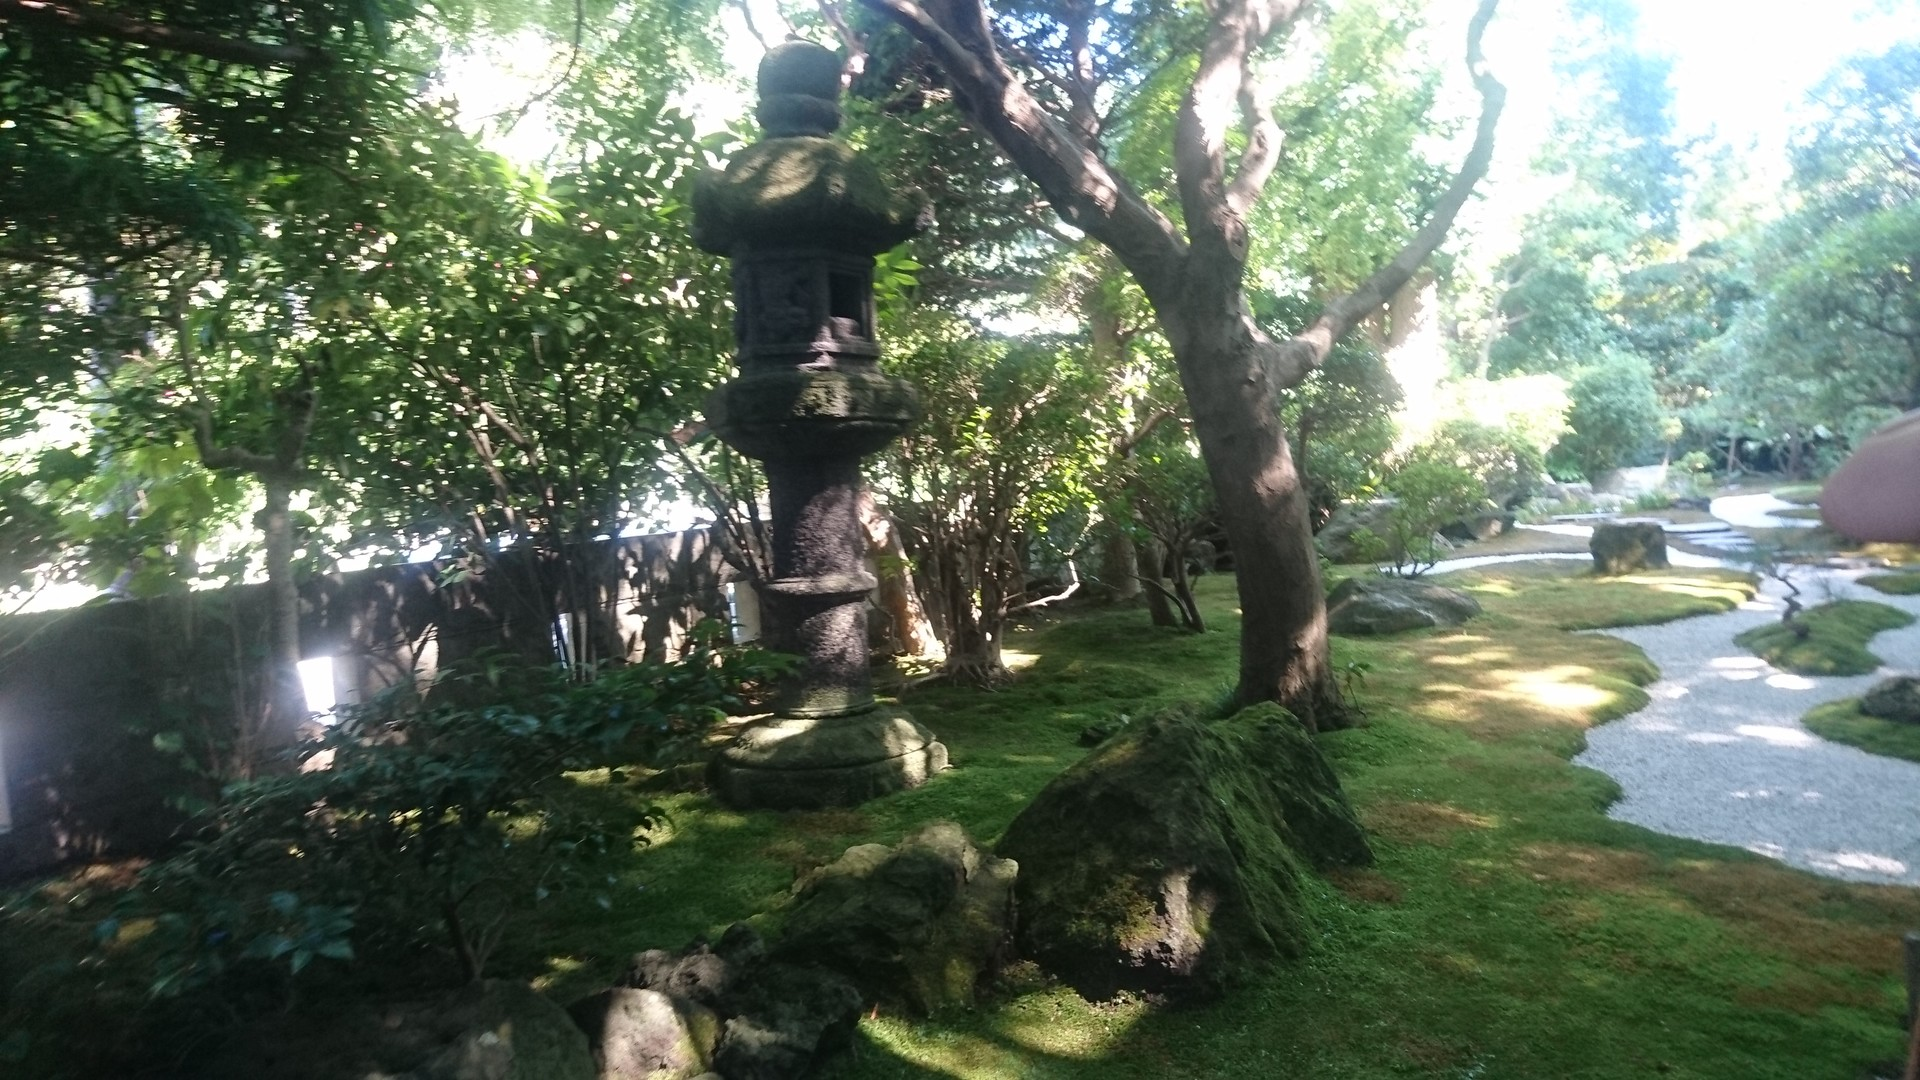 My favourite places in Japan (2 of 2): Tokyo and Kamakura